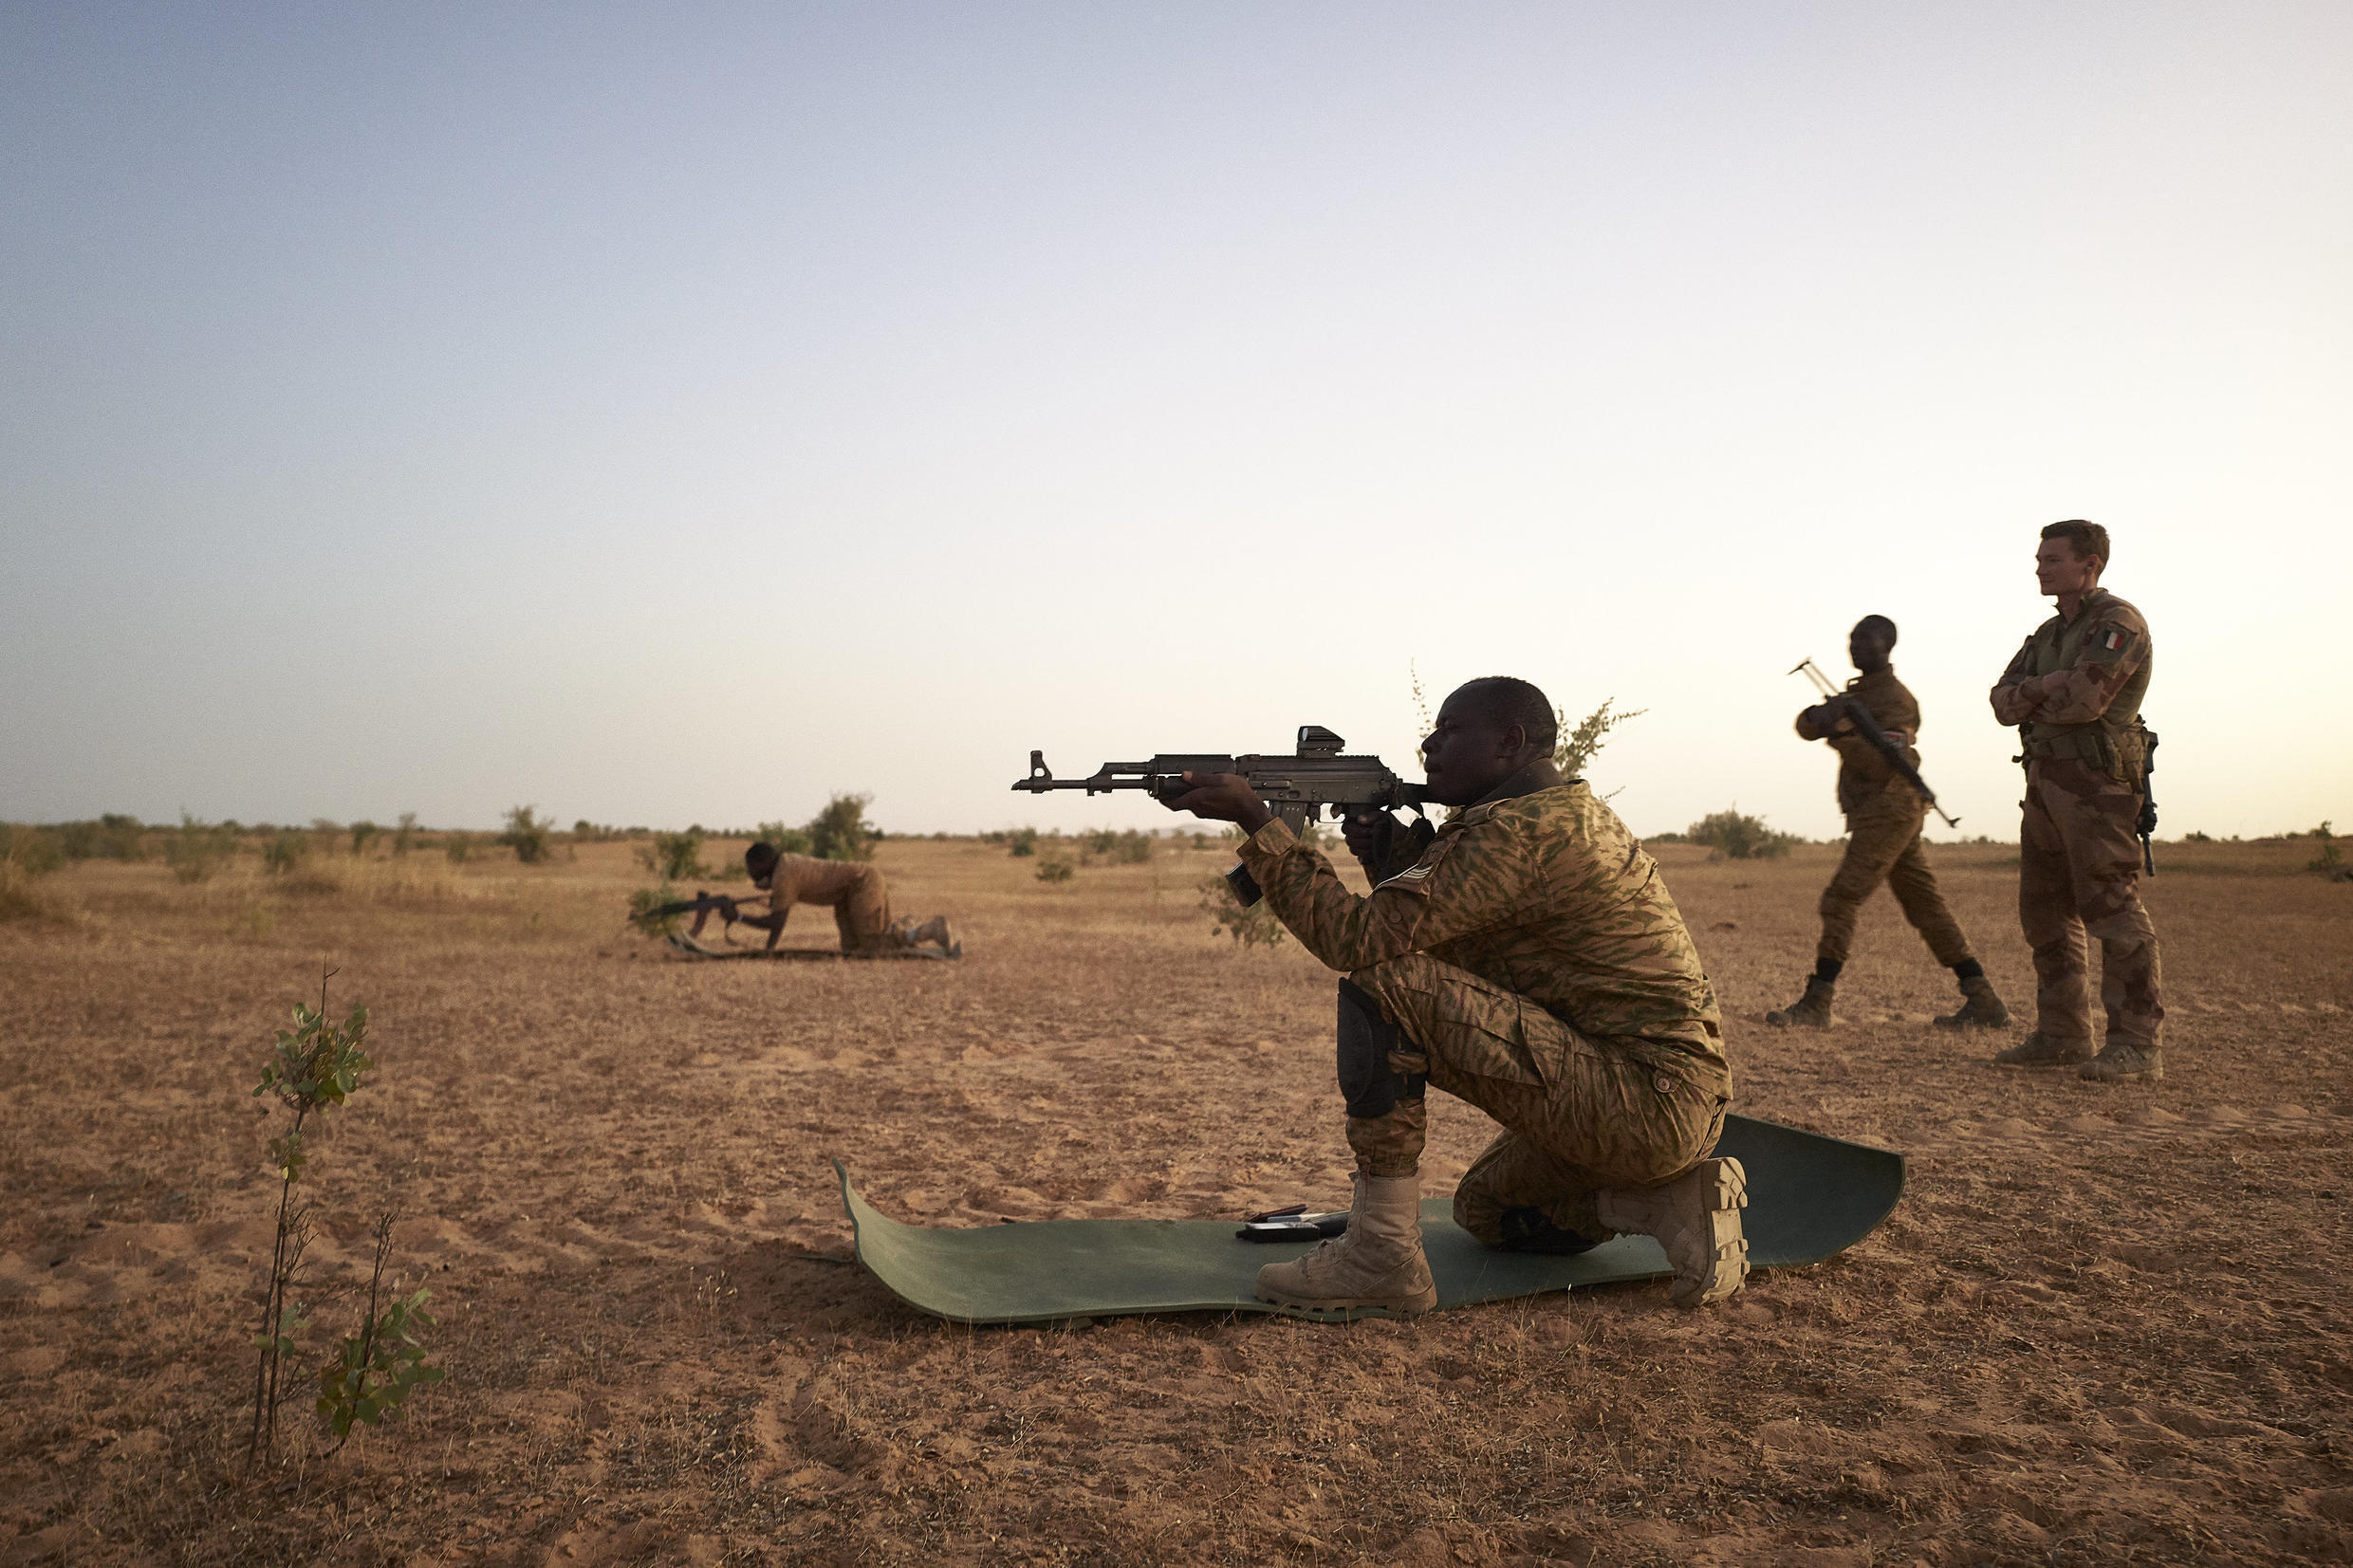 Burkinabe soldiers in a live-fire drill with the French army. The country's armed forces are struggling to contain a jihadist insurgency that has claimed more than 1,400 lives 2015